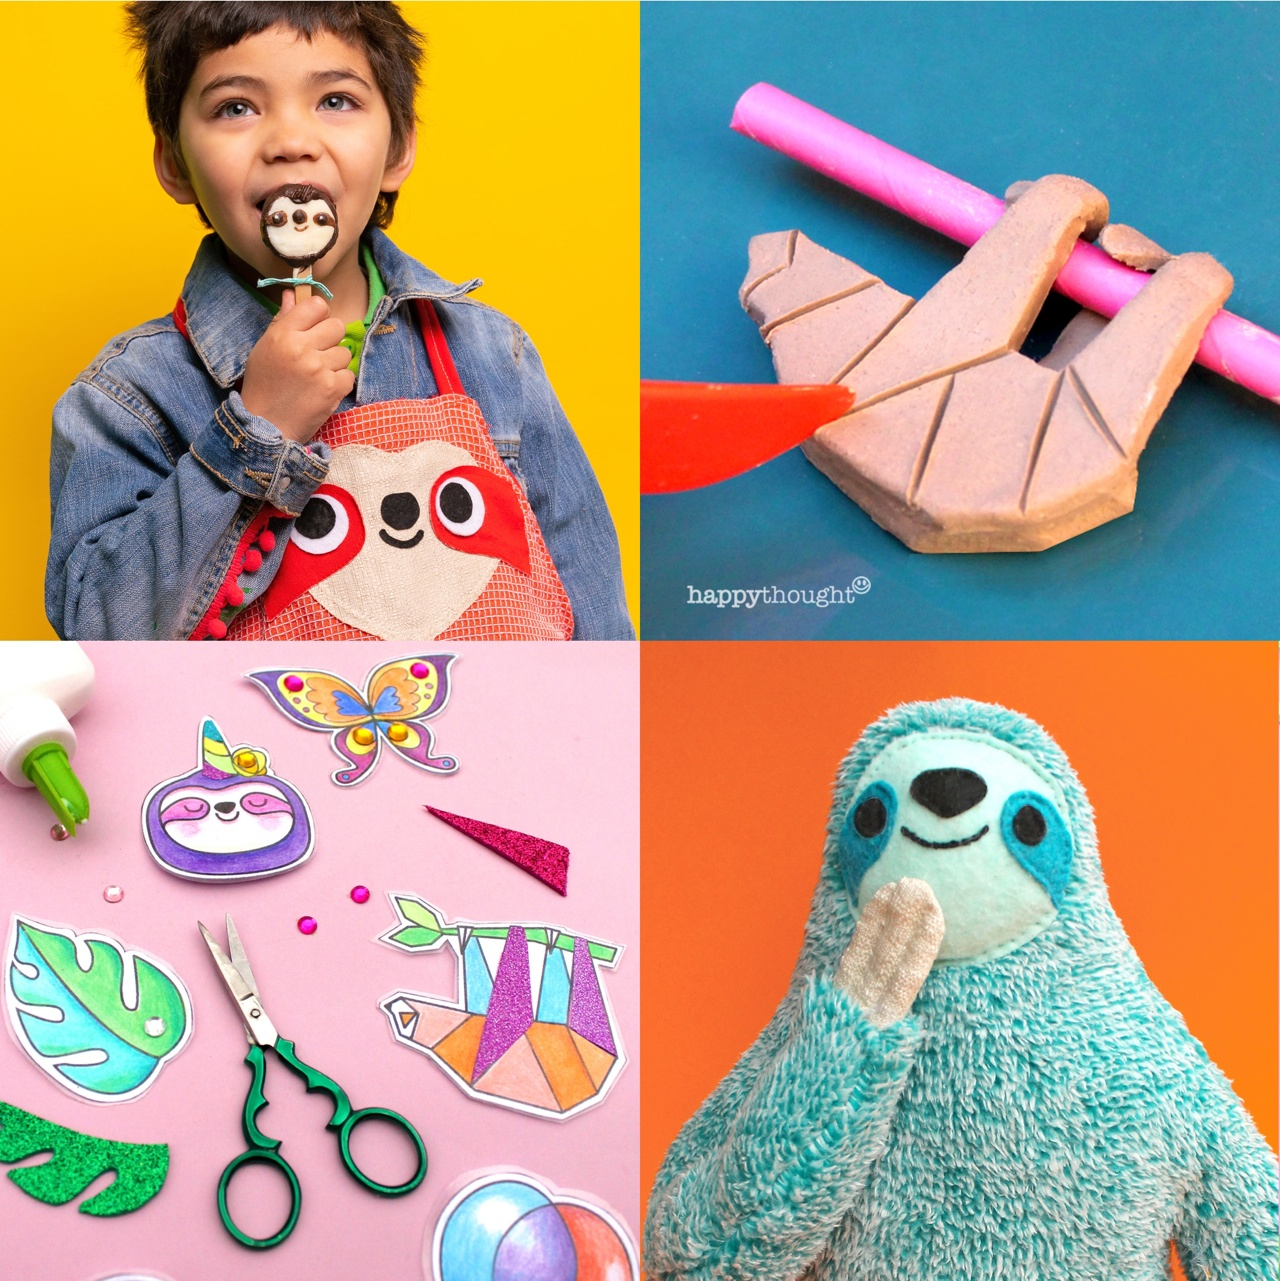 Get crafty with these sloth themed crafts! Sloth pops, sloth charm, diy pin brooches and sloth plush.